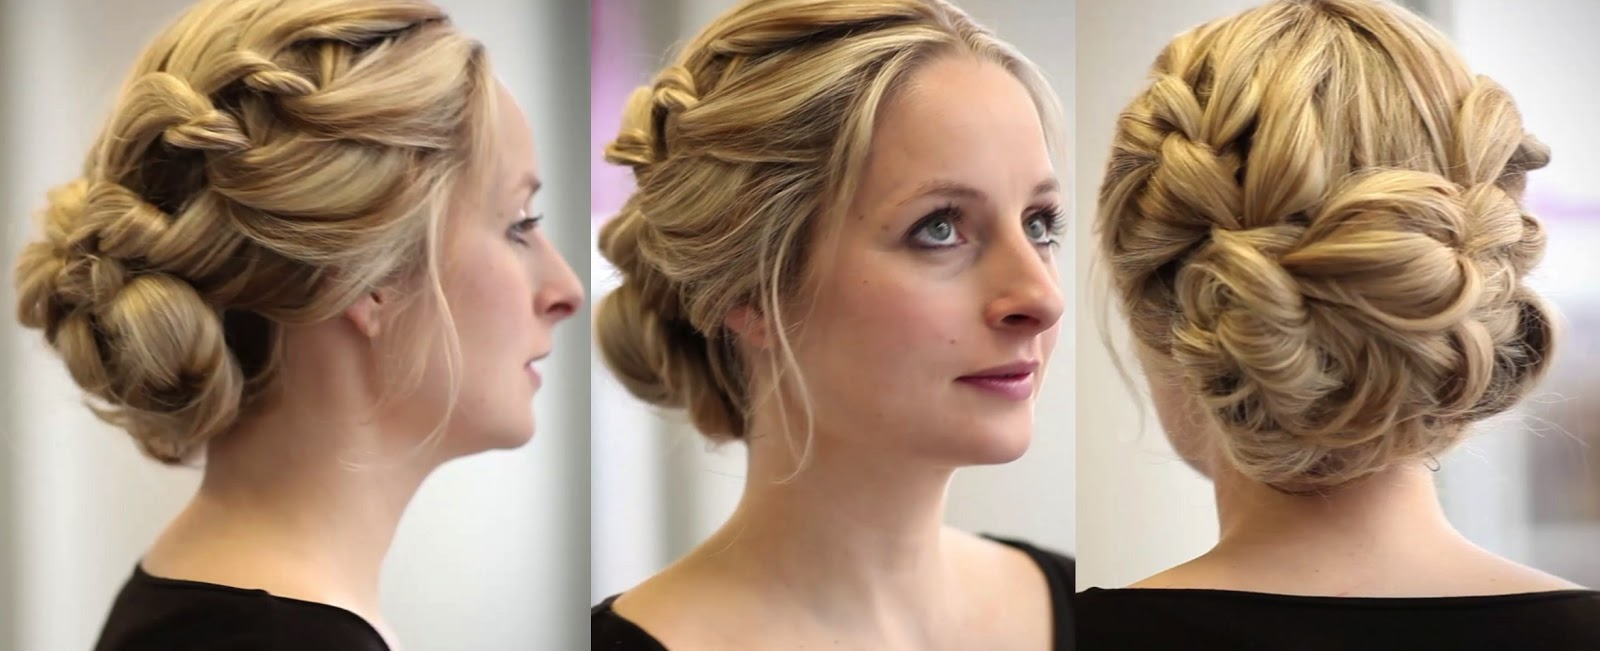 bridal hairstyles 2013 | trend hairstyle and haircut ideas